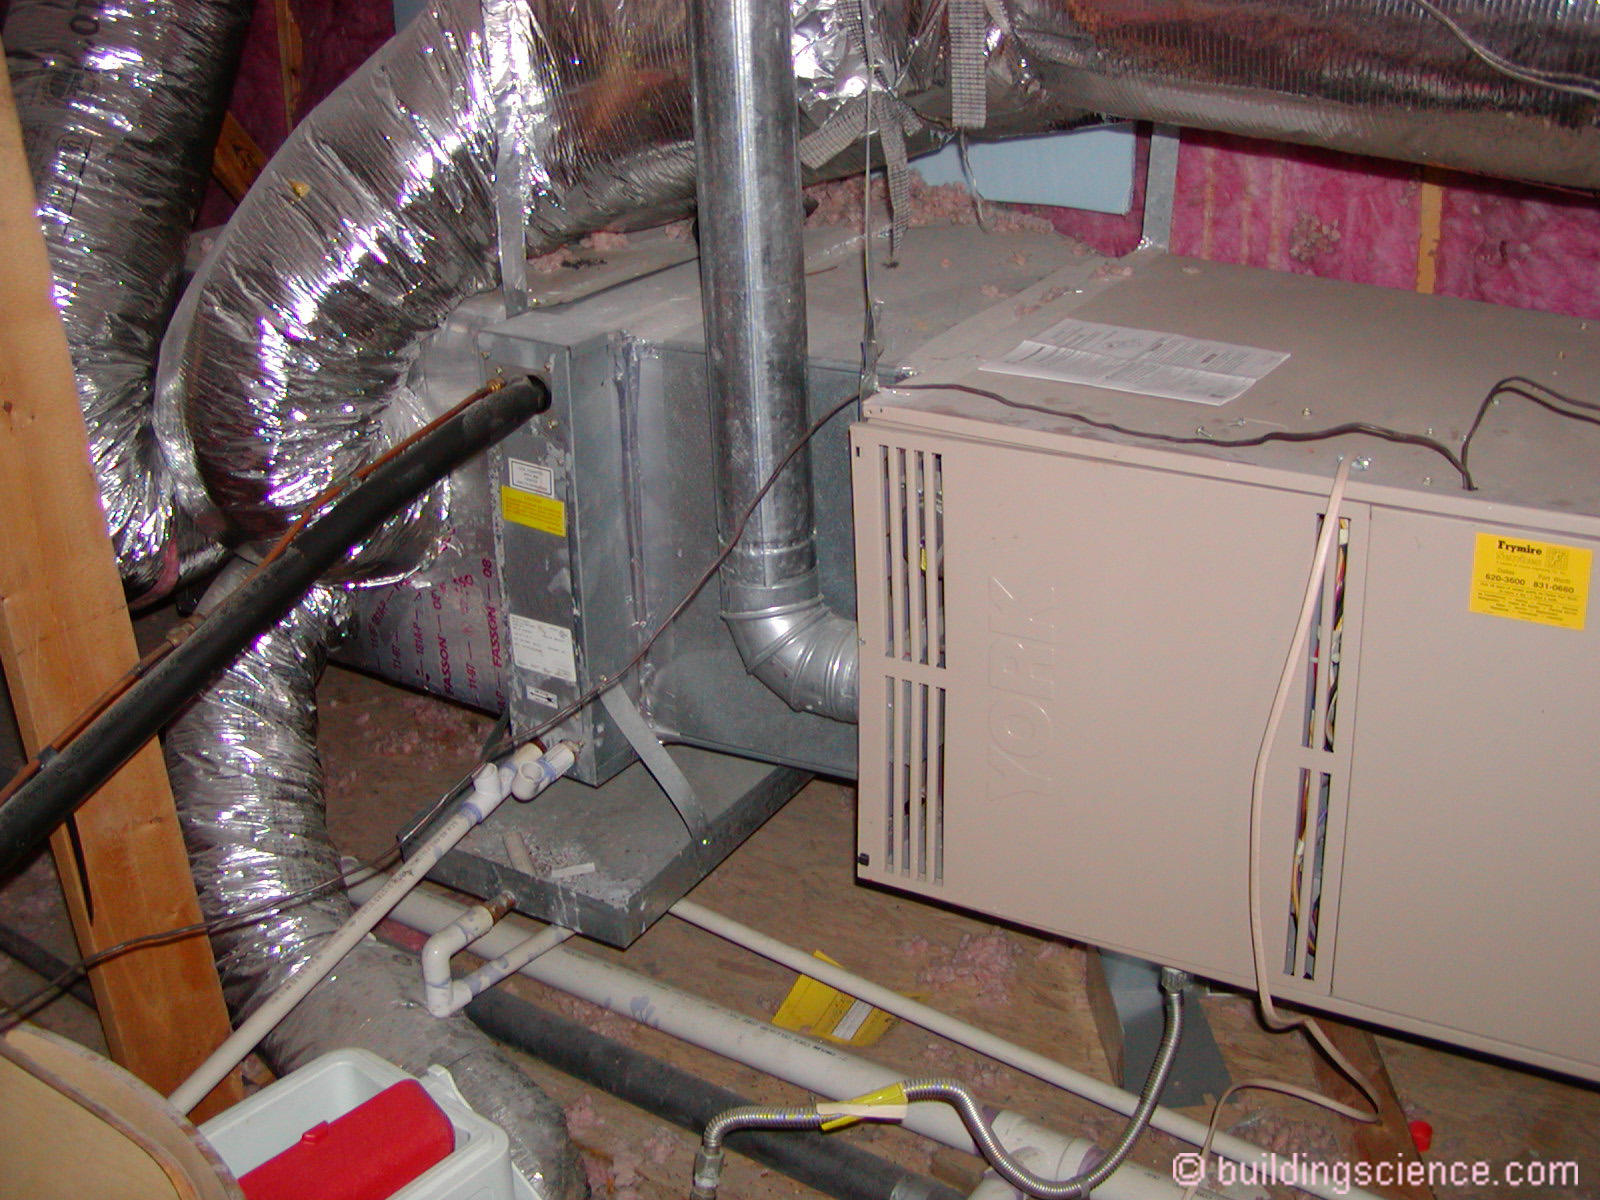 small resolution of photograph 2 attic air conditioner and furnace standard vented combustion gas furnace with a single stage air conditioner located in a south texas attic